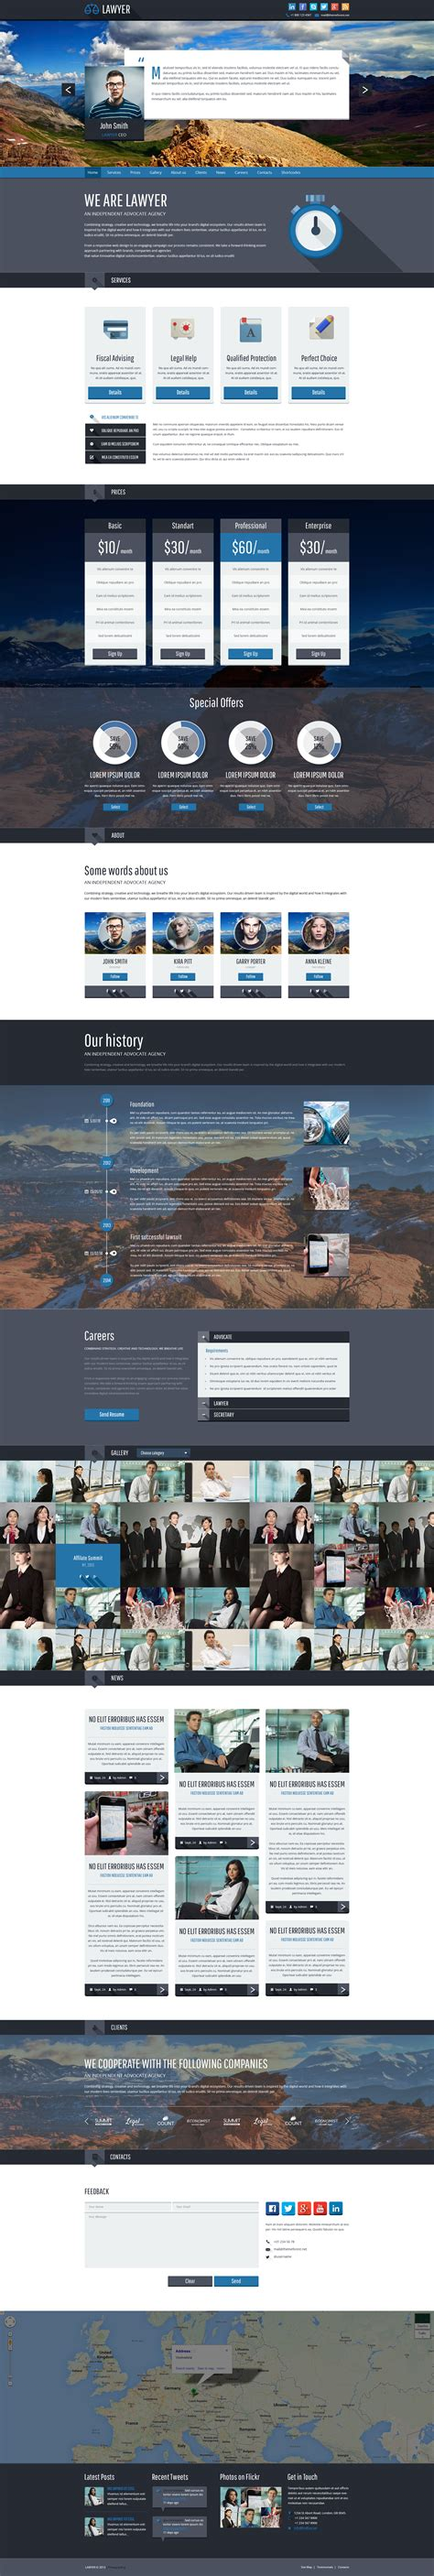 bootstrap themes lawyer lawyer bootstrap psd template by fxoffice themeforest